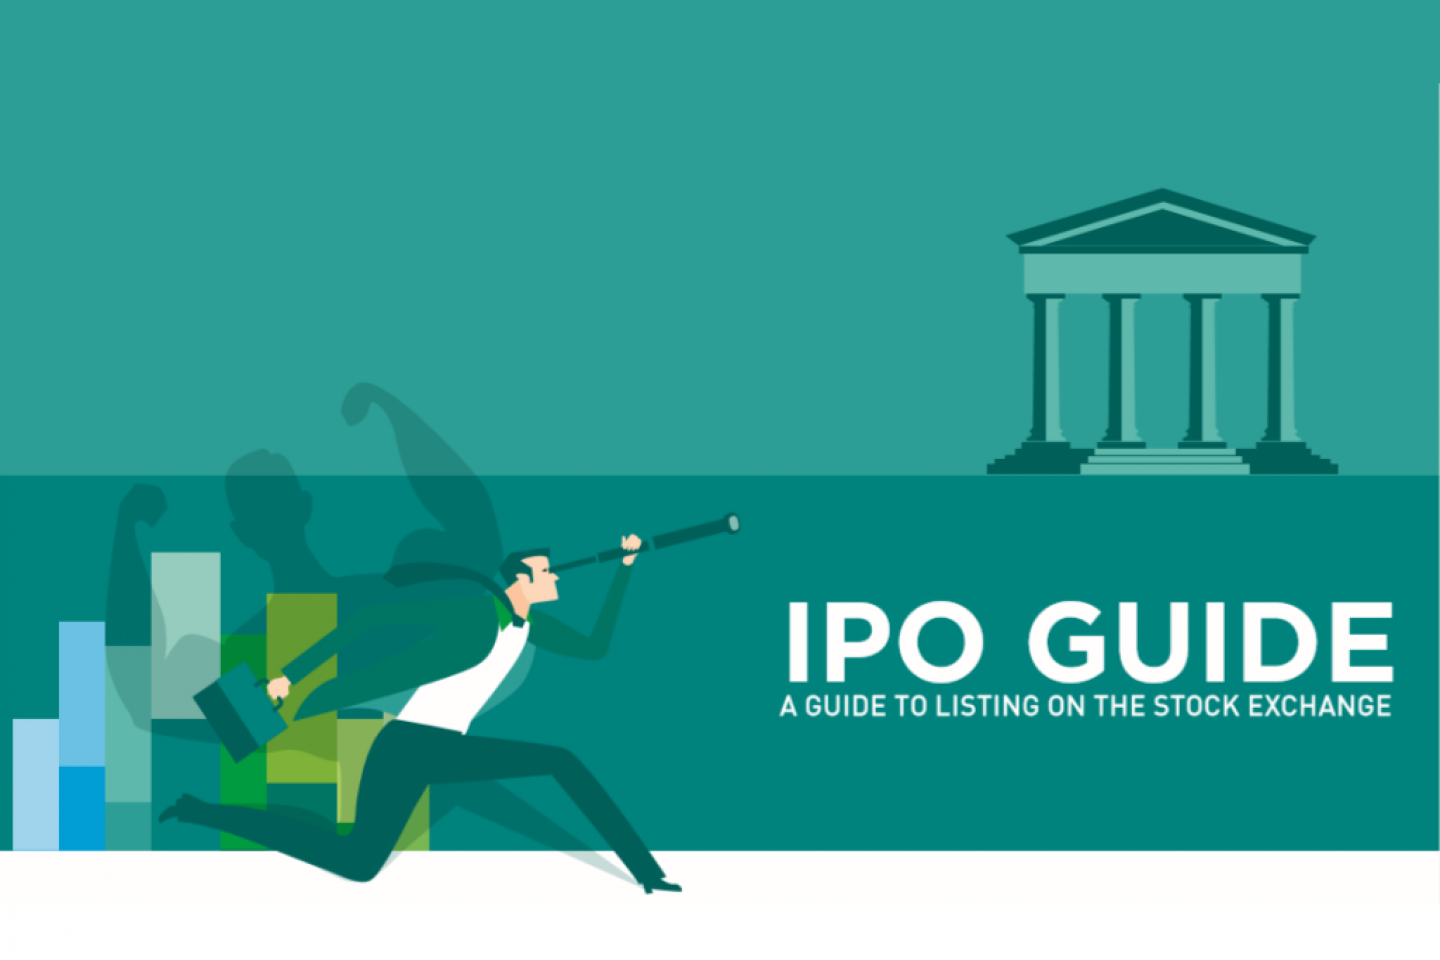 IPO Guide